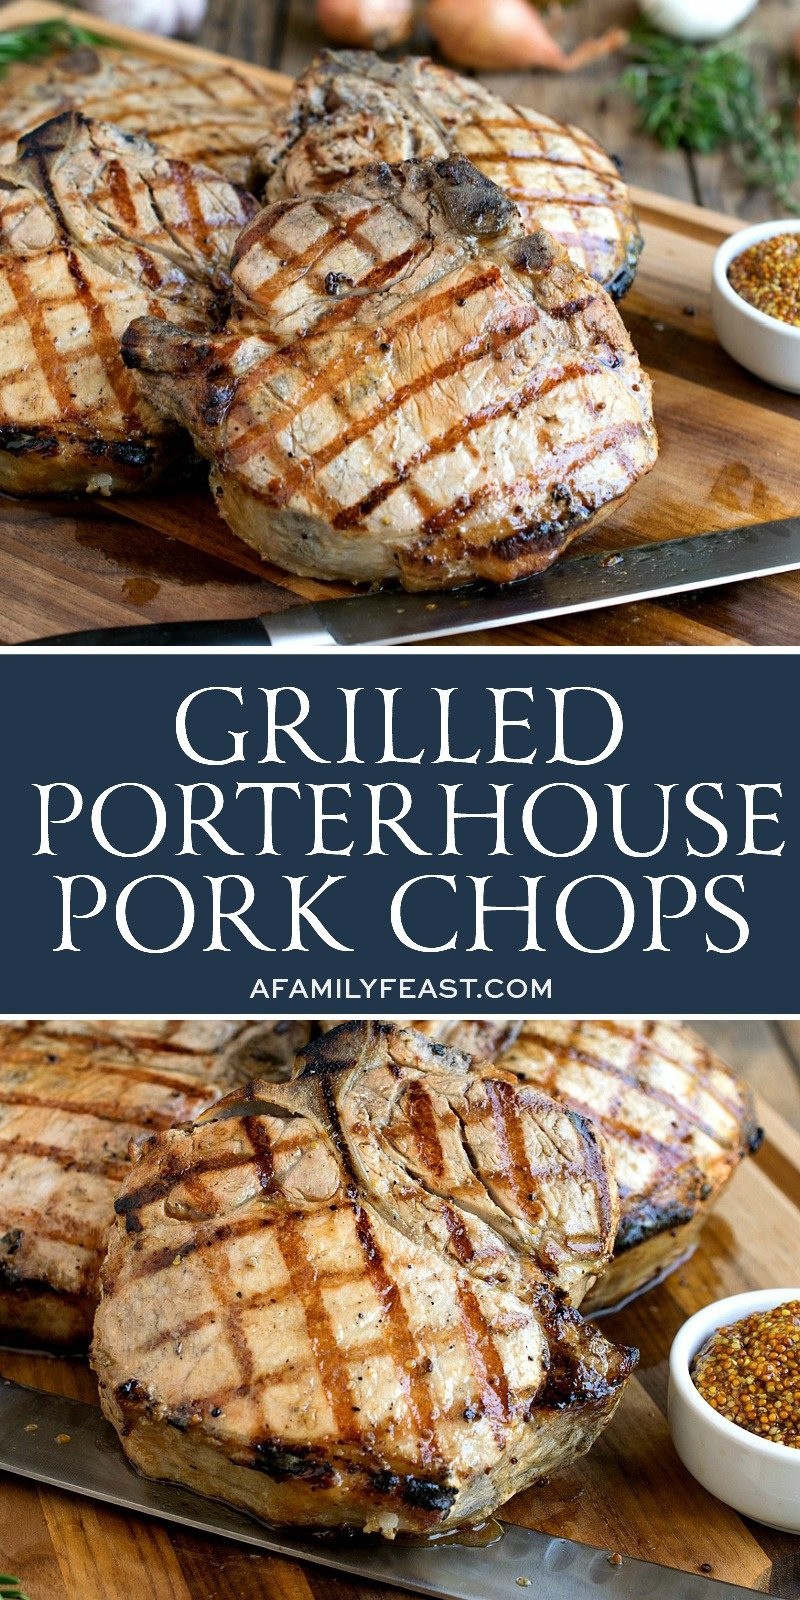 These thick and juicy Grilled Porterhouse Pork Chops are going to be the talk of the neighborhood! Delight your hungry guests and make them for your next cookout!